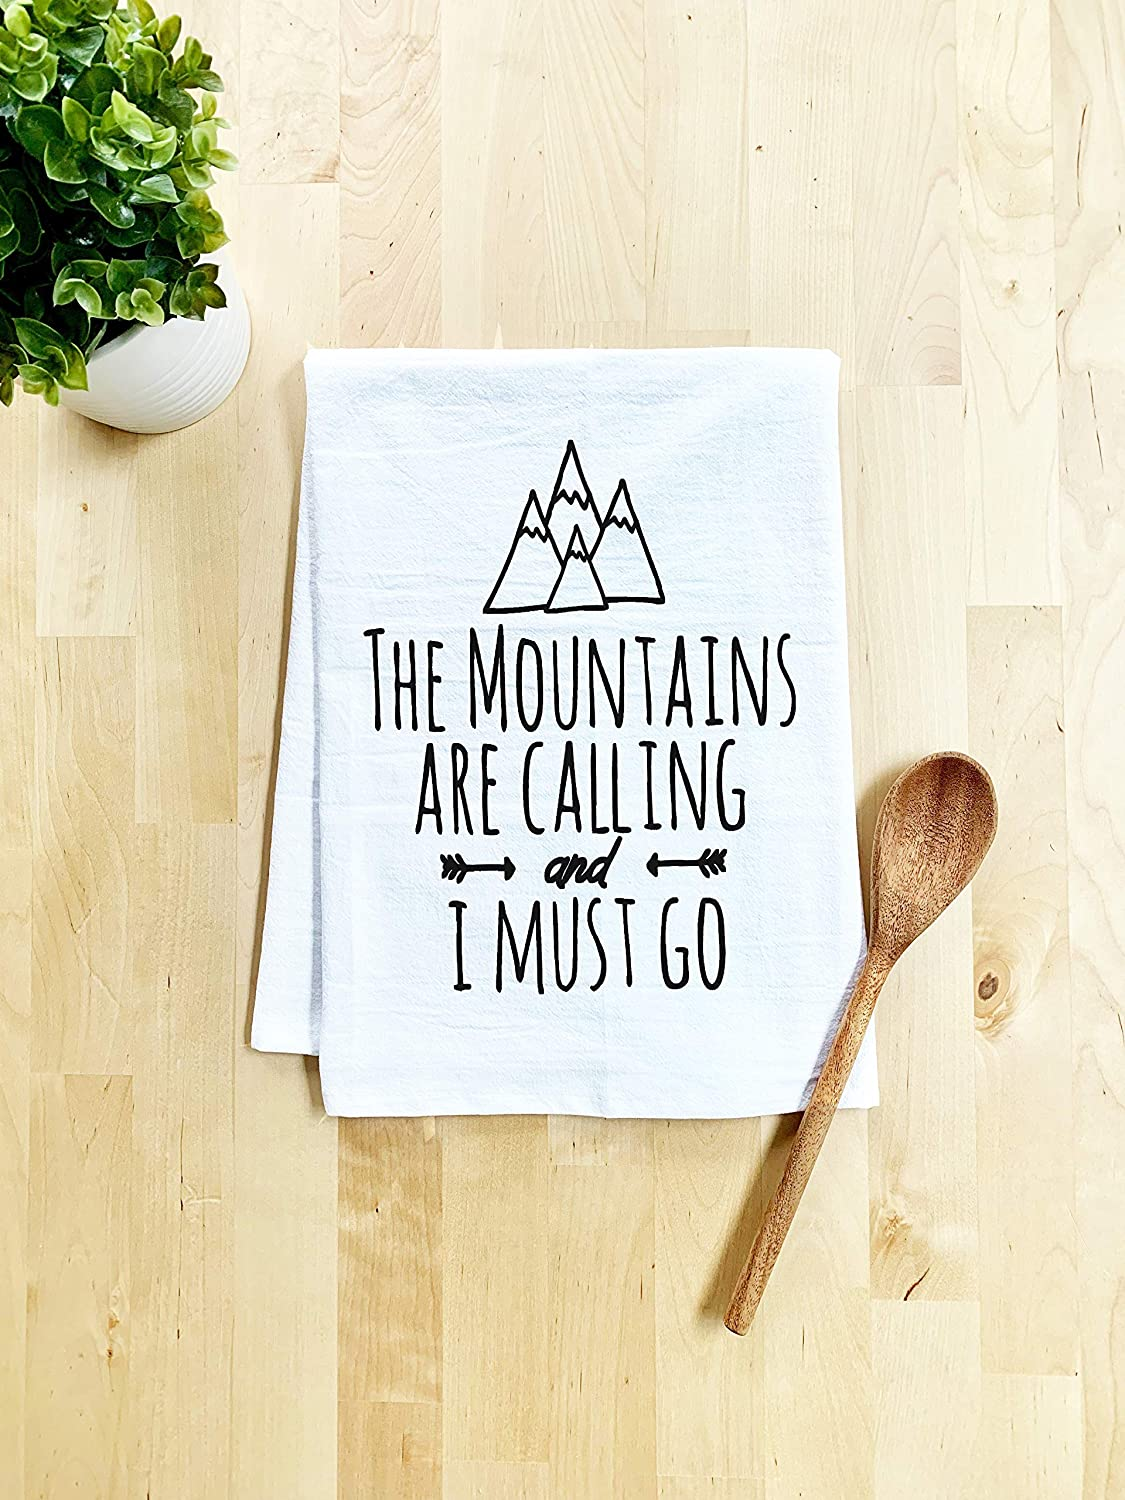 Funny Kitchen Towel, The Mountains Are Calling and I Must Go, Flour Sack Dish Towel, Sweet Housewarming Gift, White